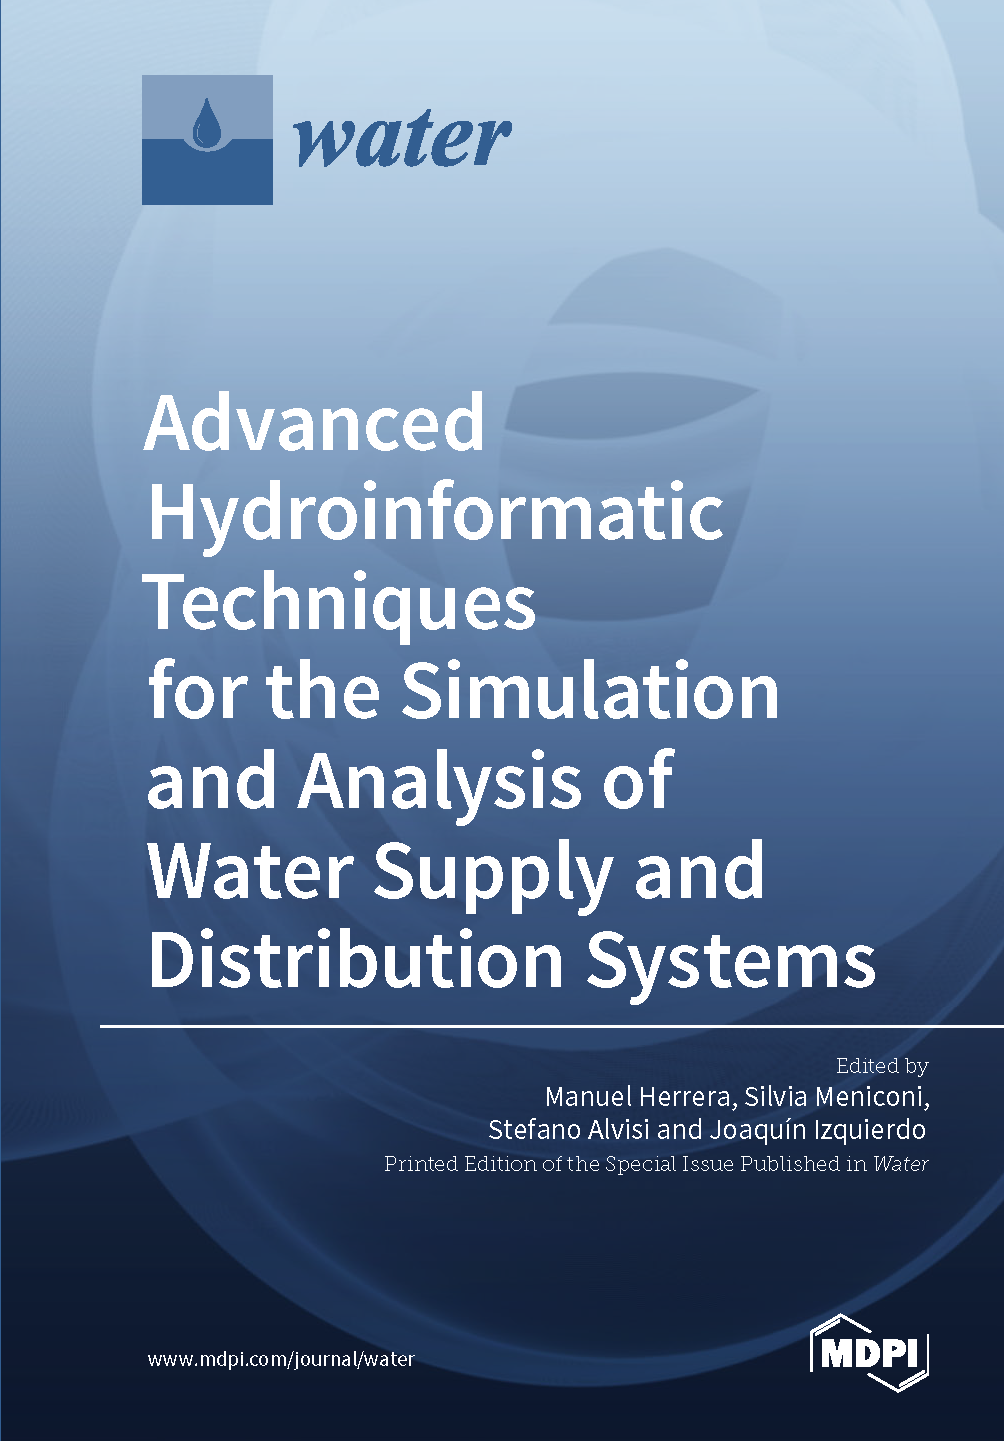 Advanced Hydroinformatic Techniques for the Simulation and Analysis of Water Supply and Distribution Systems